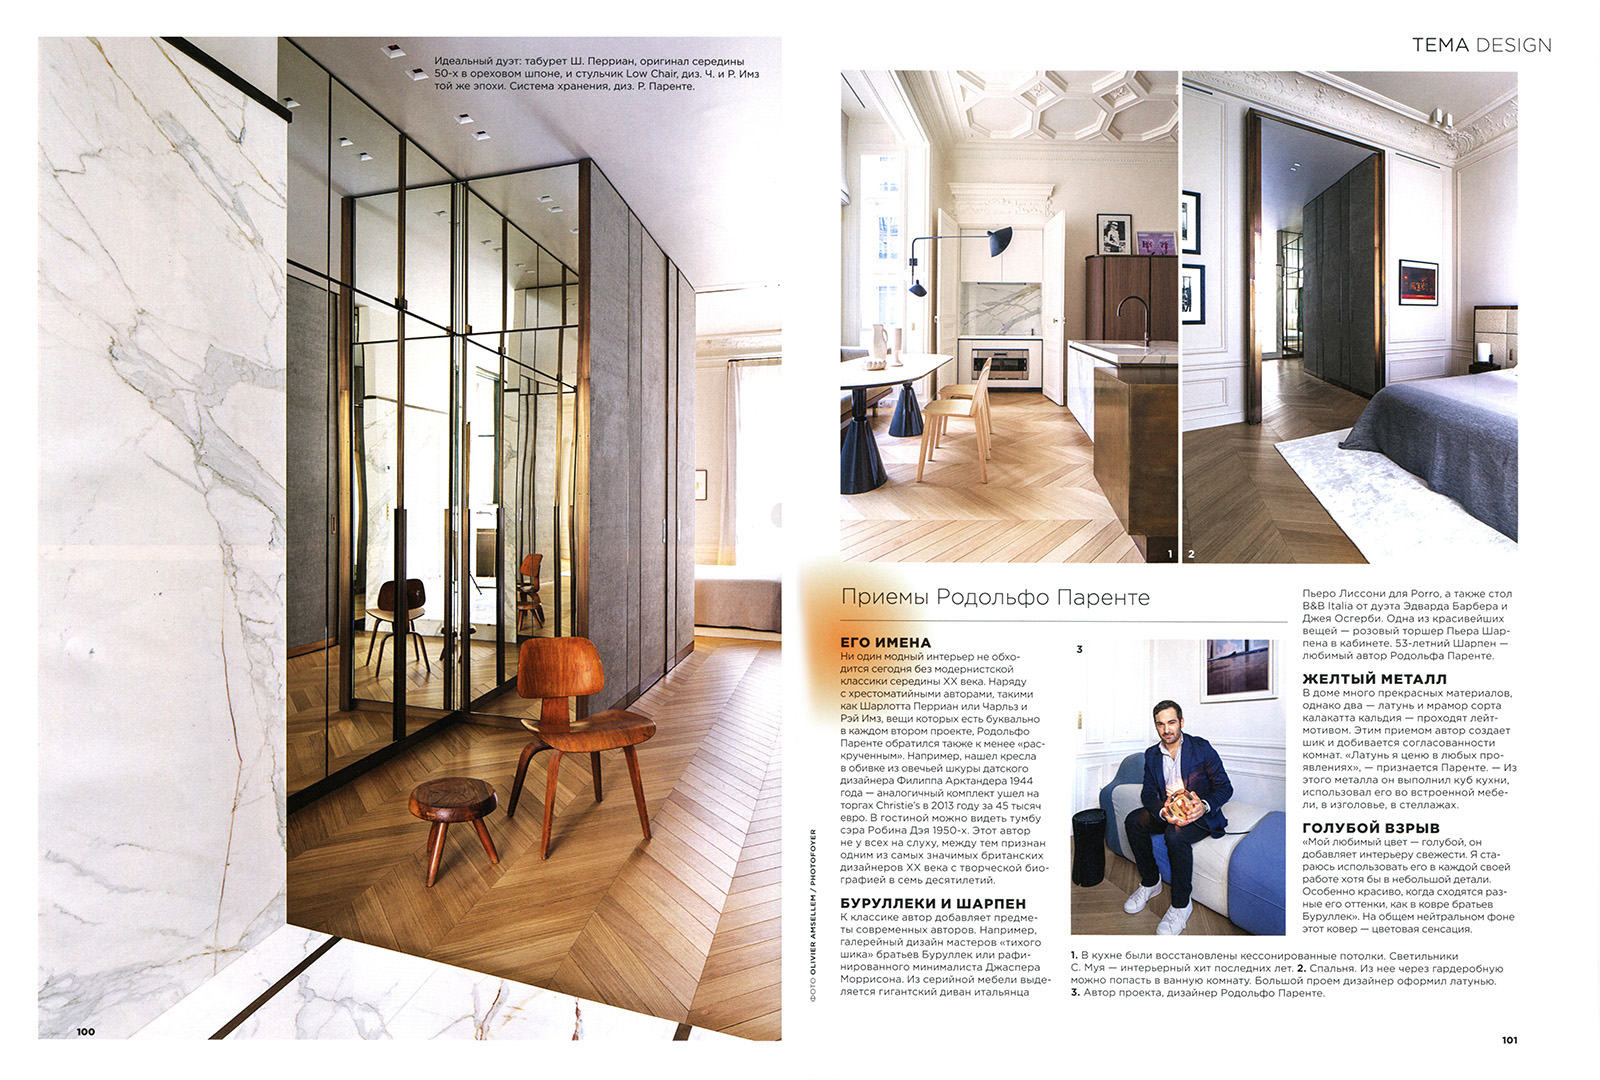 Rodolphe-Parente-Interior-Design-Magazine-2015-06